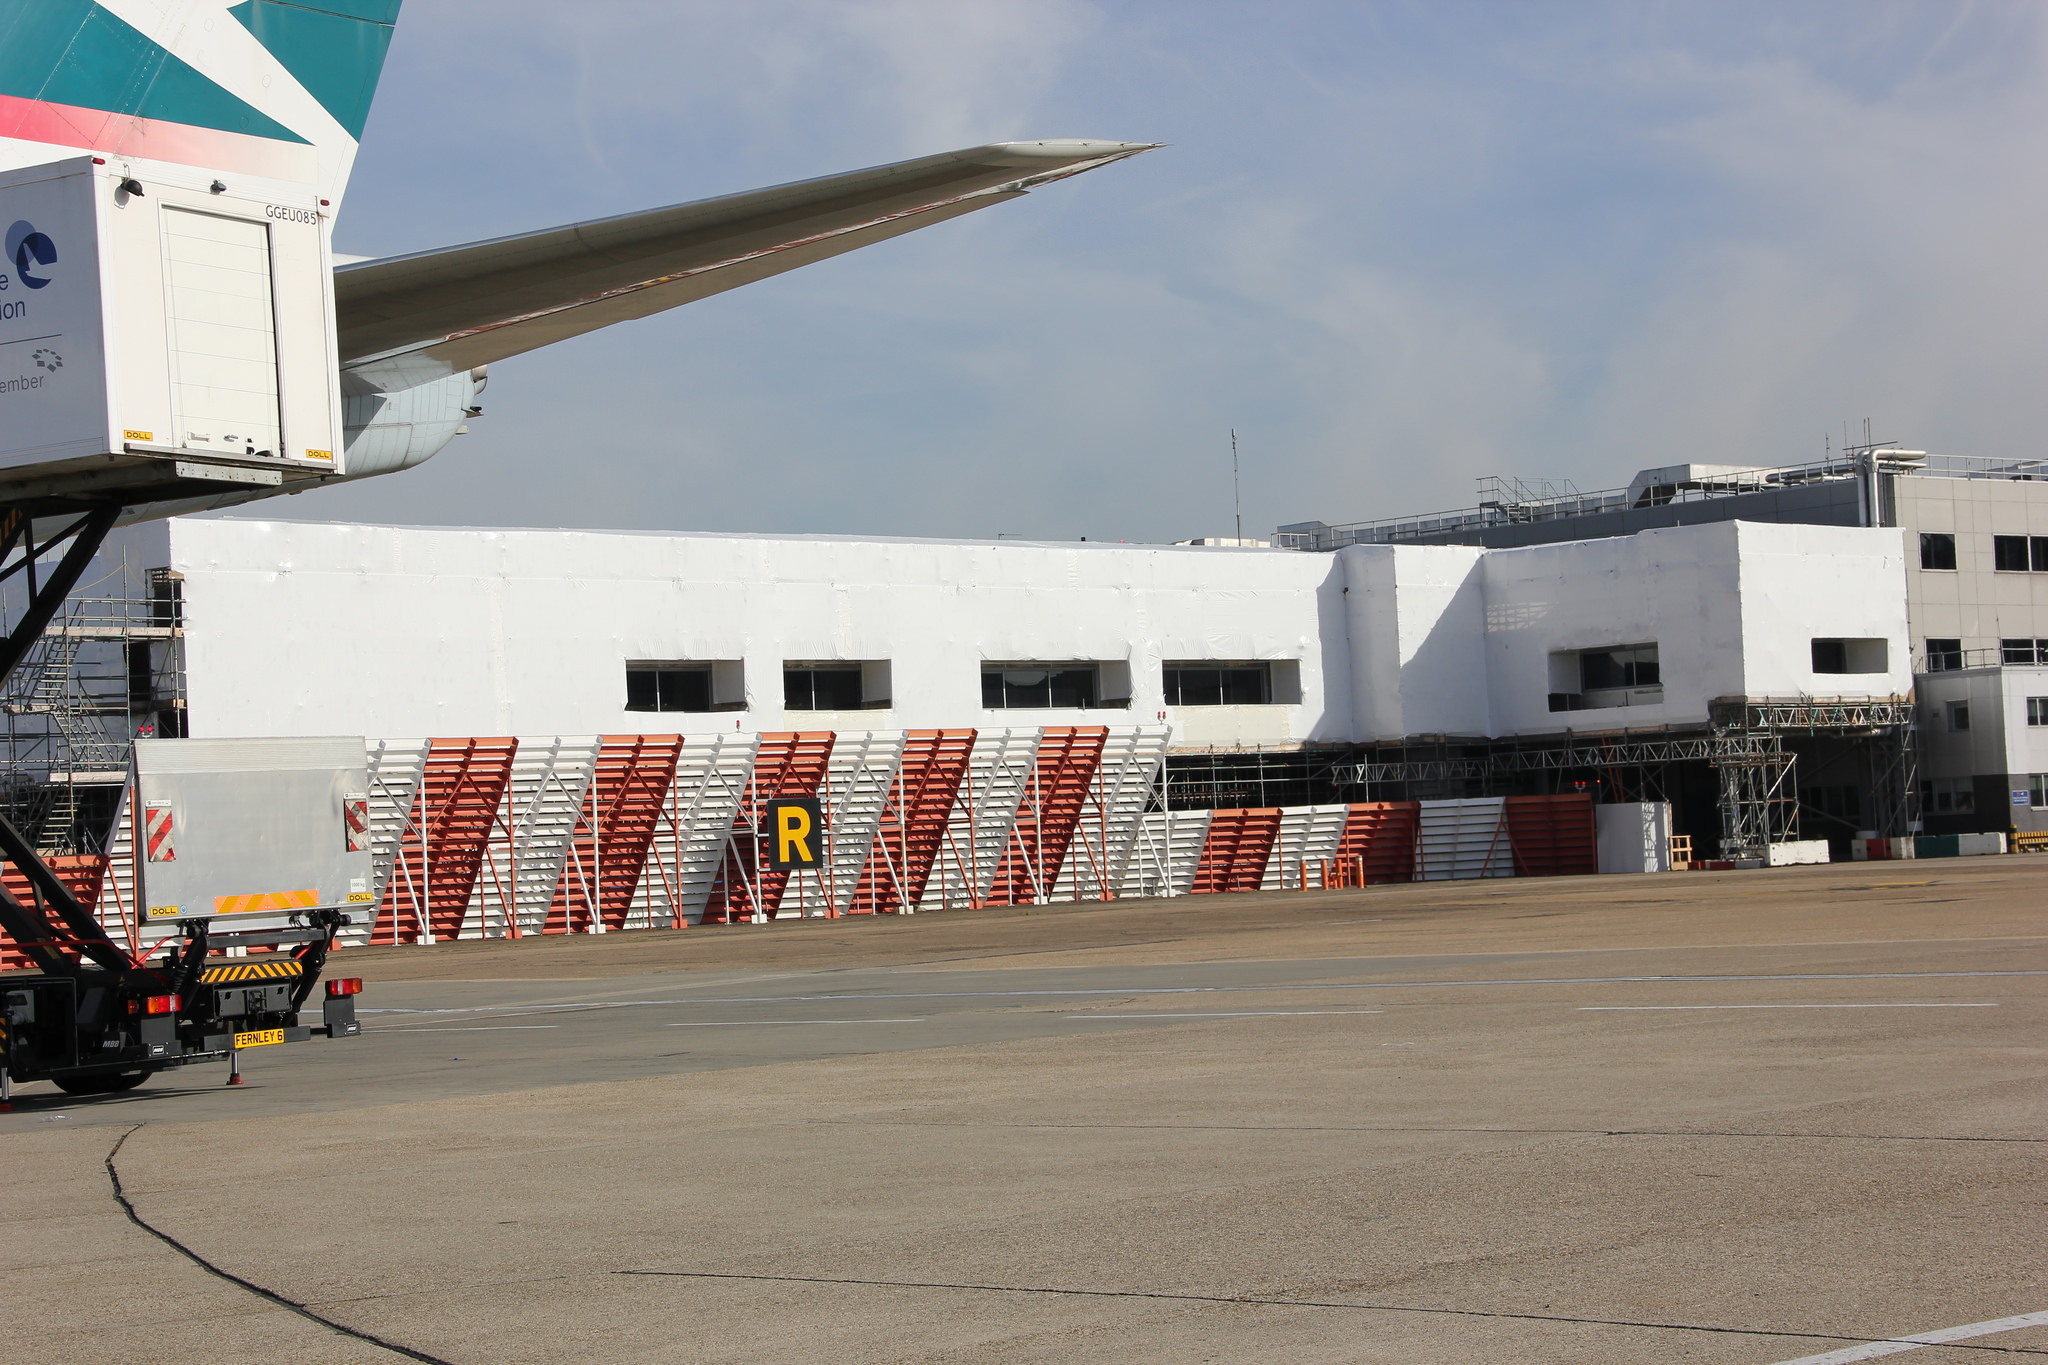 Shrink wrap scaffold sheeting installed at Heathrow Airport